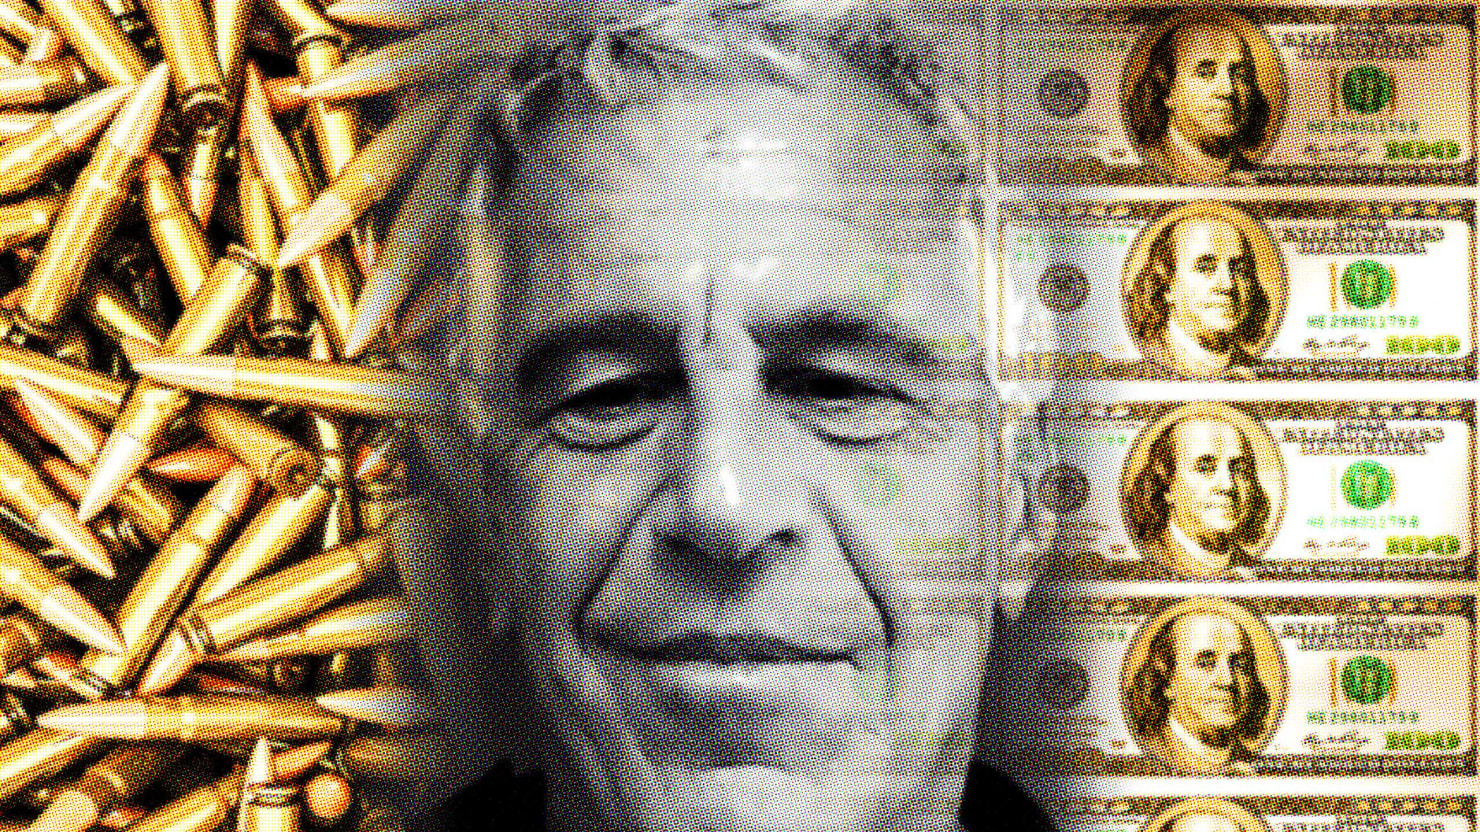 I Tried to Warn You About Sleazy Billionaire Jeffrey Epstein in 2003